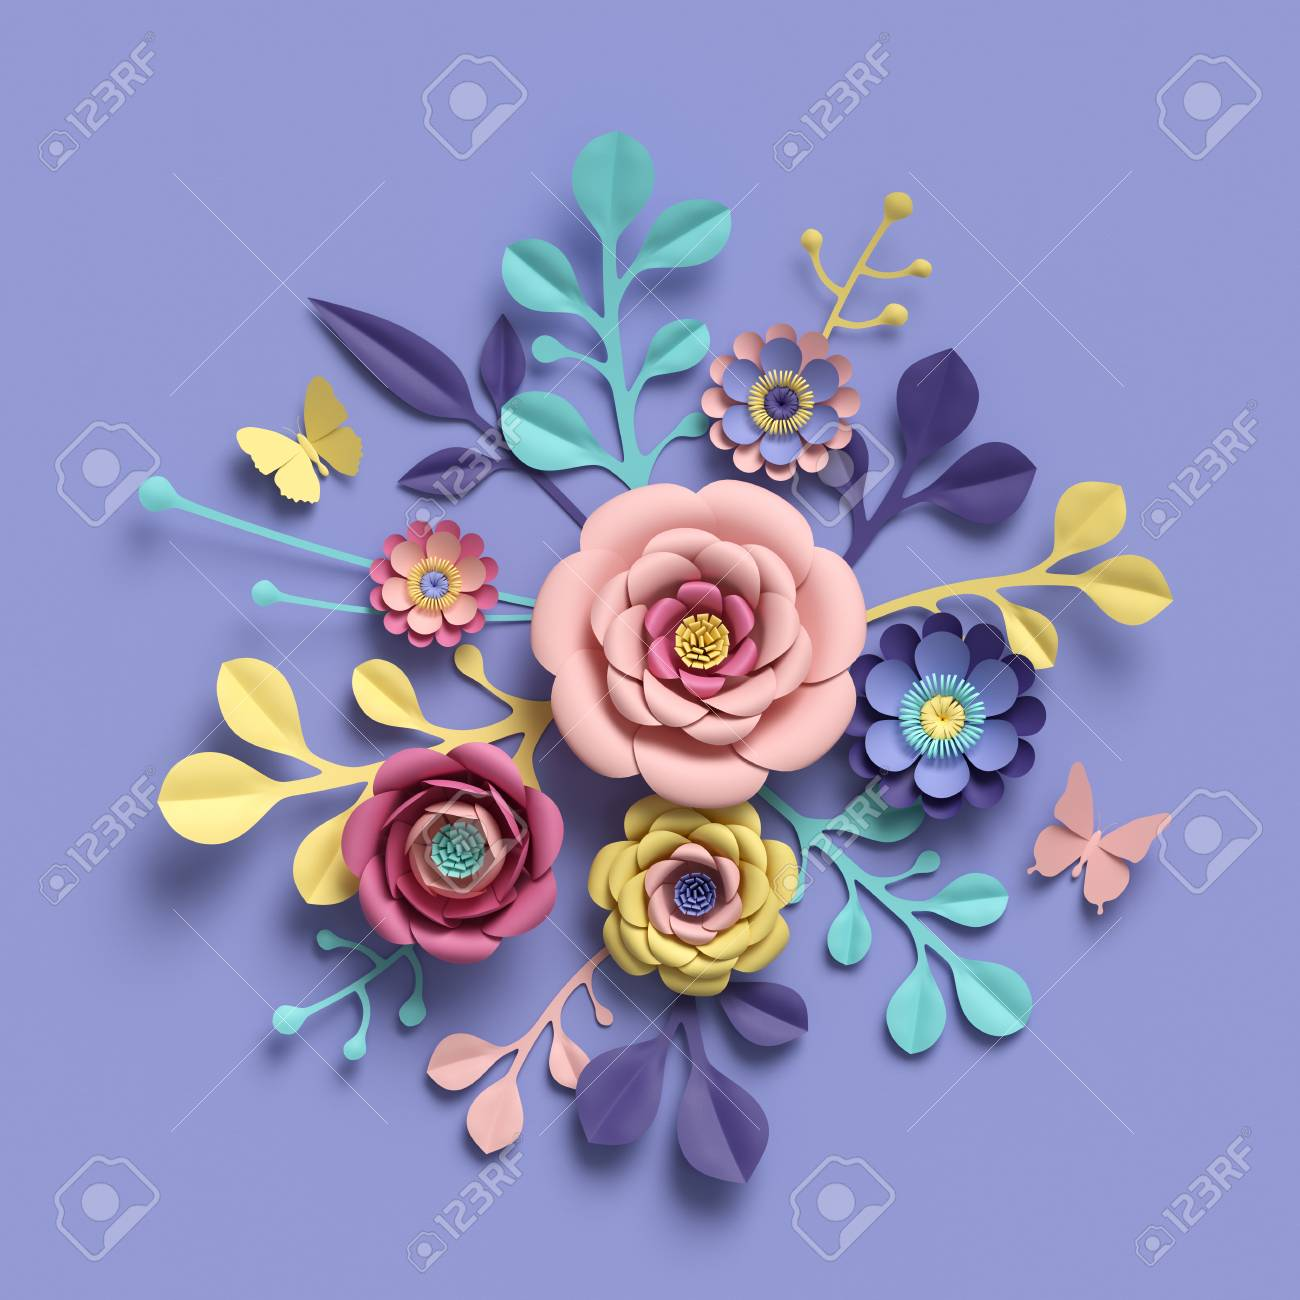 3d rendering abstract floral background paper flowers botanical 3d rendering abstract floral background paper flowers botanical pattern bridal round bouquet izmirmasajfo